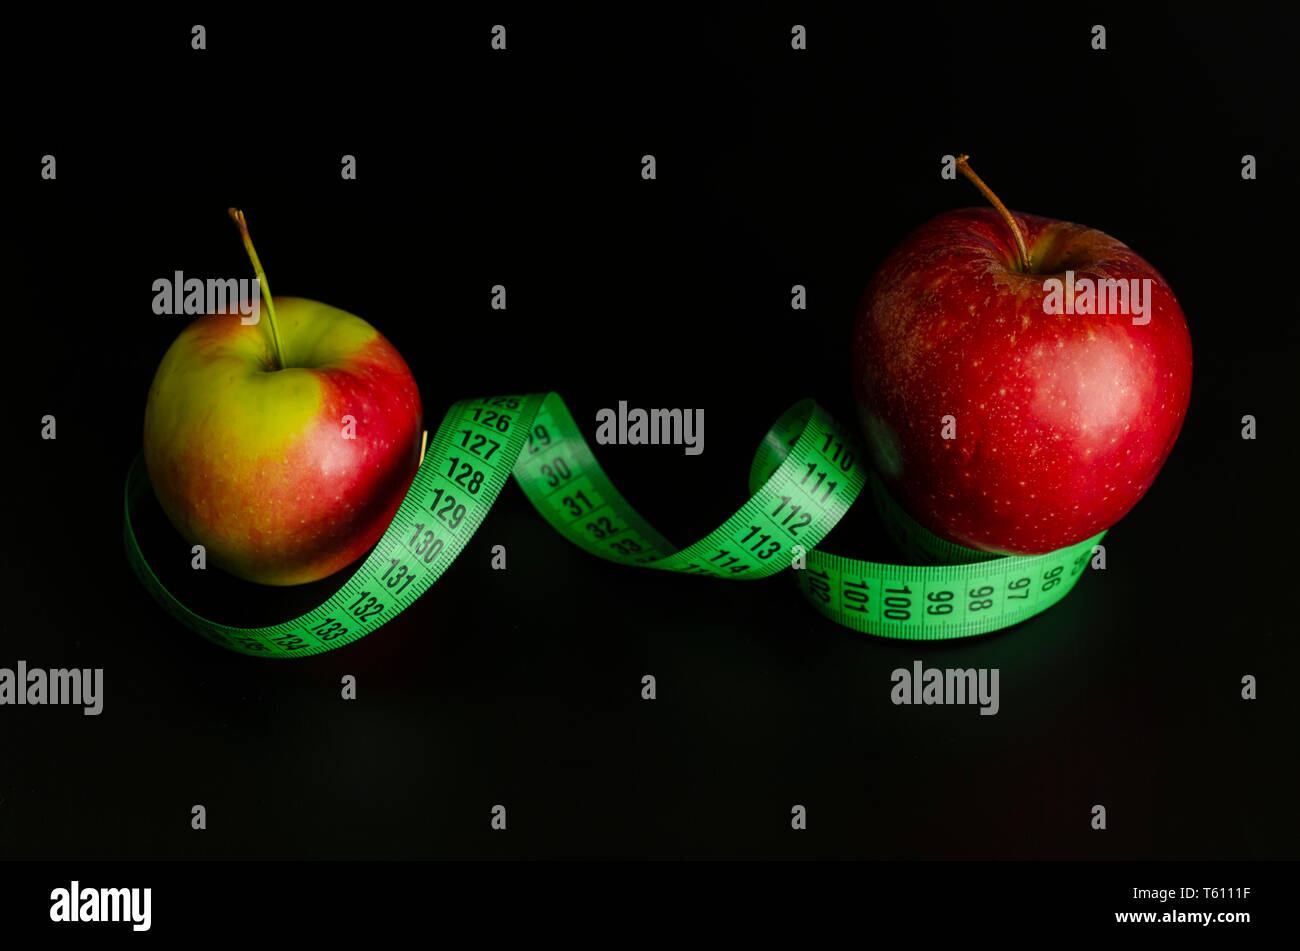 Red apple and green measuring tape on black background. Weight loss and slimming treatment concept. Copy space - Stock Image